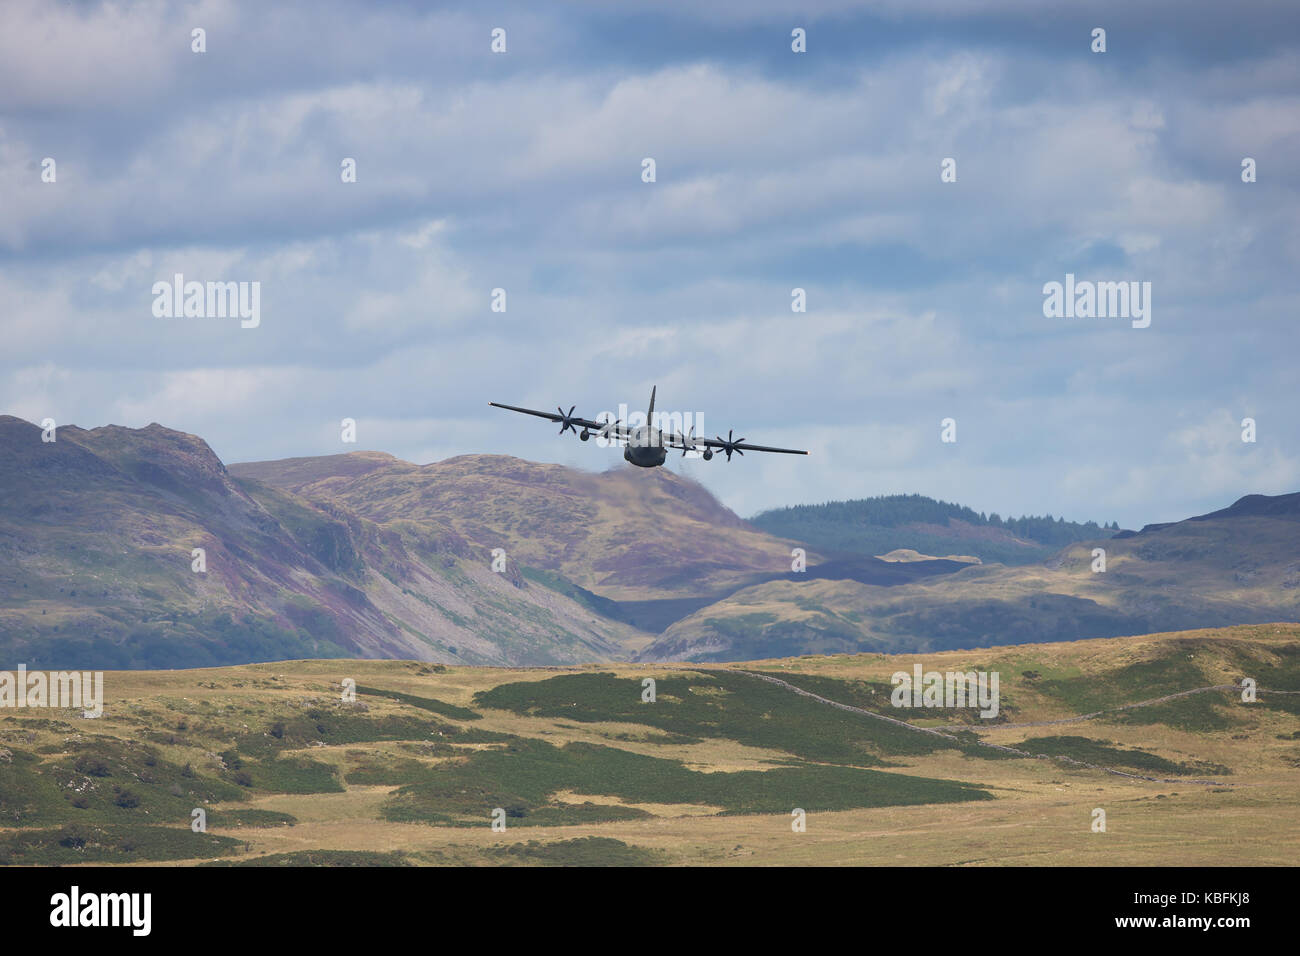 A low-flying Hercules aircraft heading towards the camera; Welsh mountains in the background & cloudy sky create - Stock Image